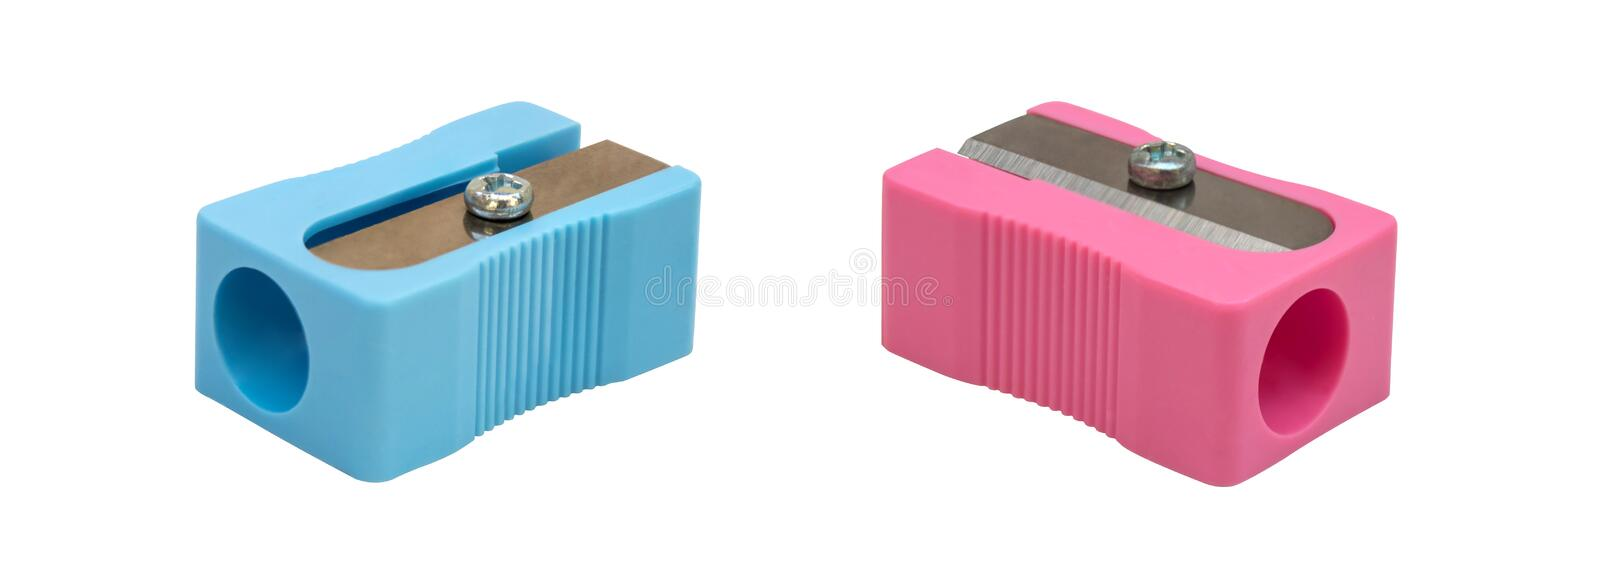 Blue and pink pencil sharpener isolated on white background. stock images